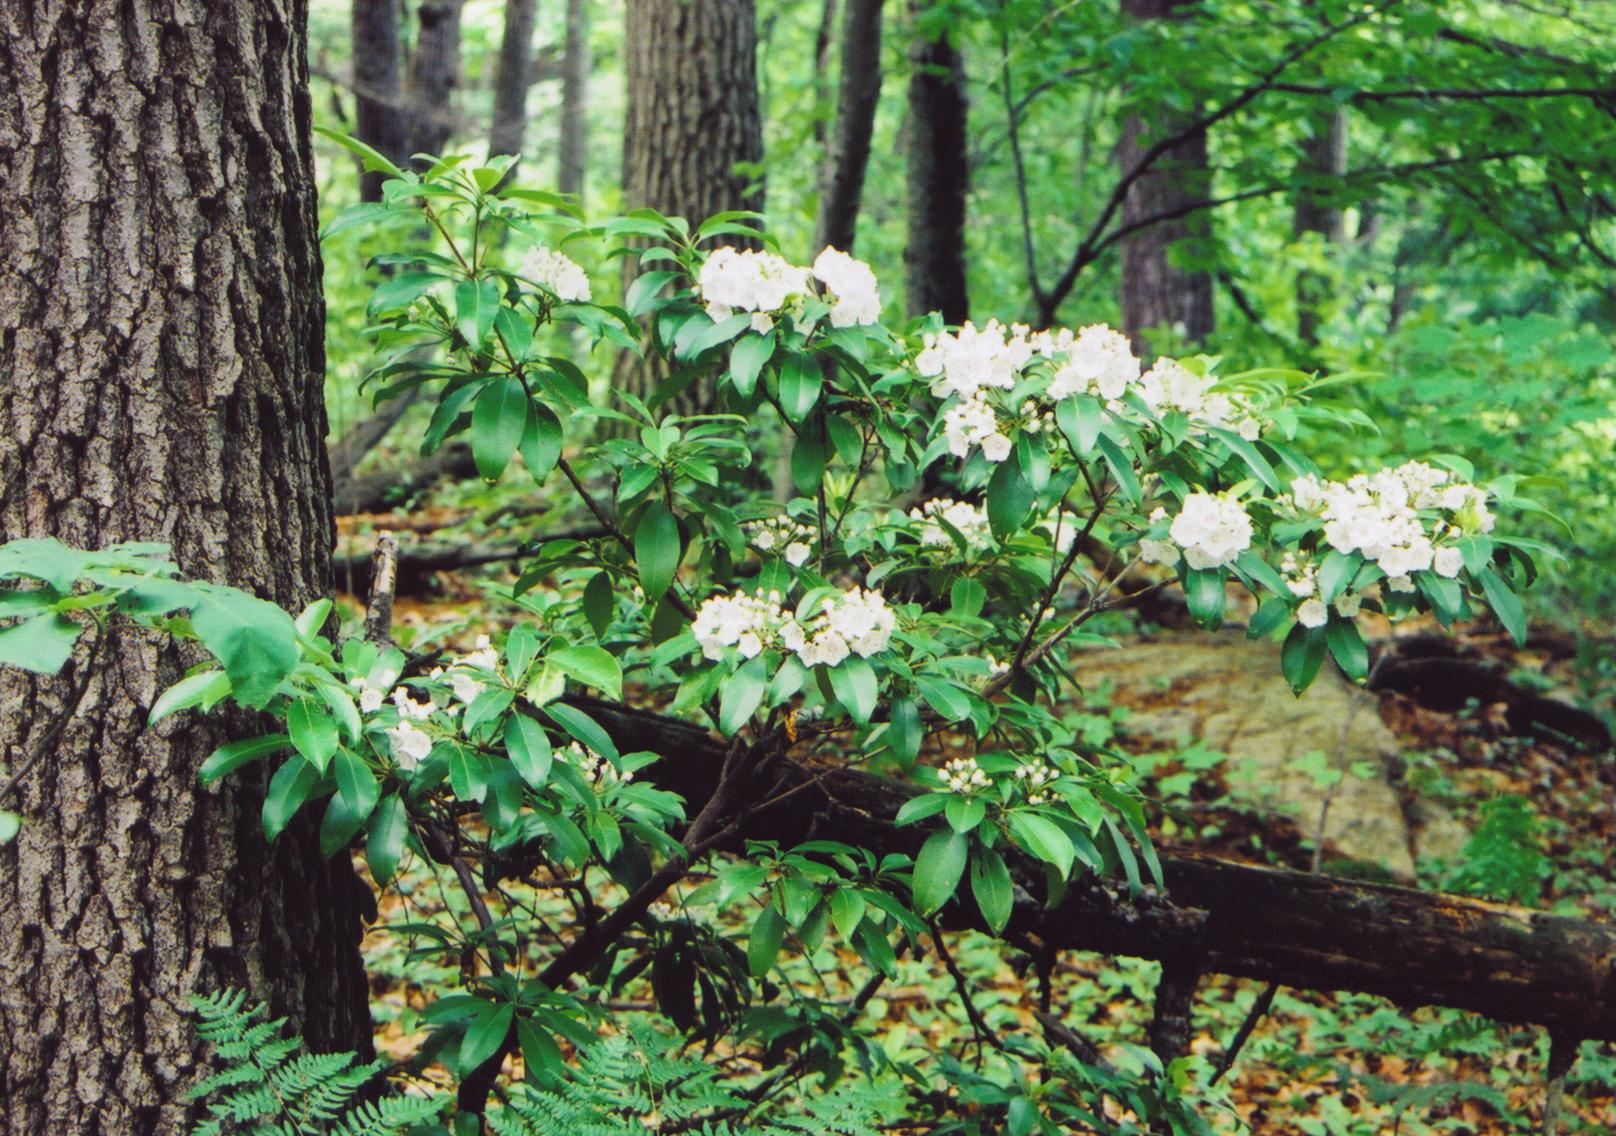 Mountain laurel crone